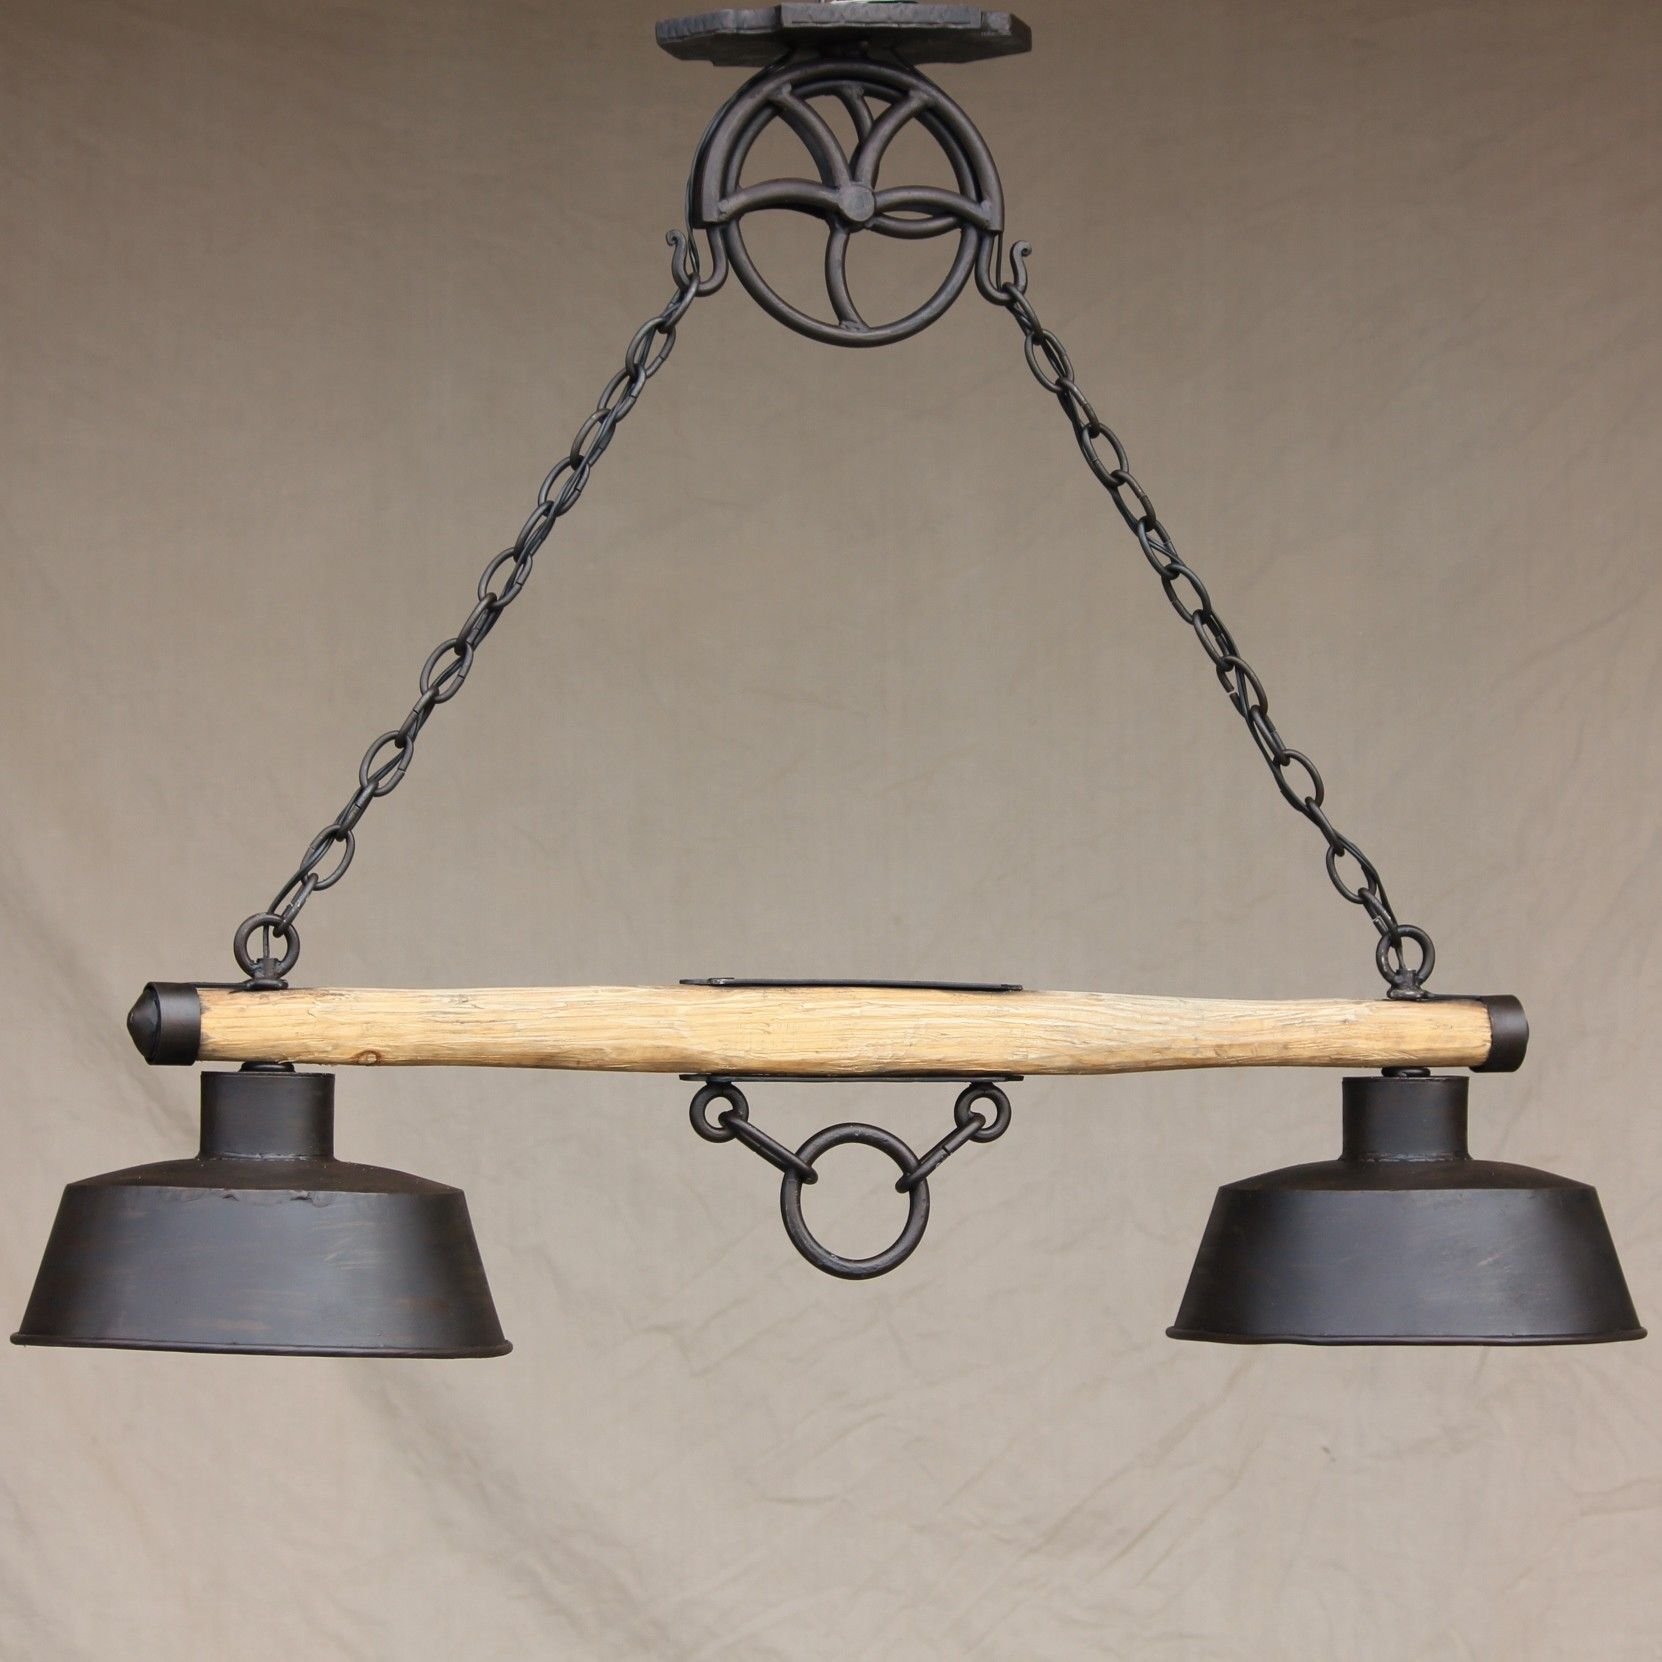 log cabin wood chandelier hanging Hand Forged Wrought Iron